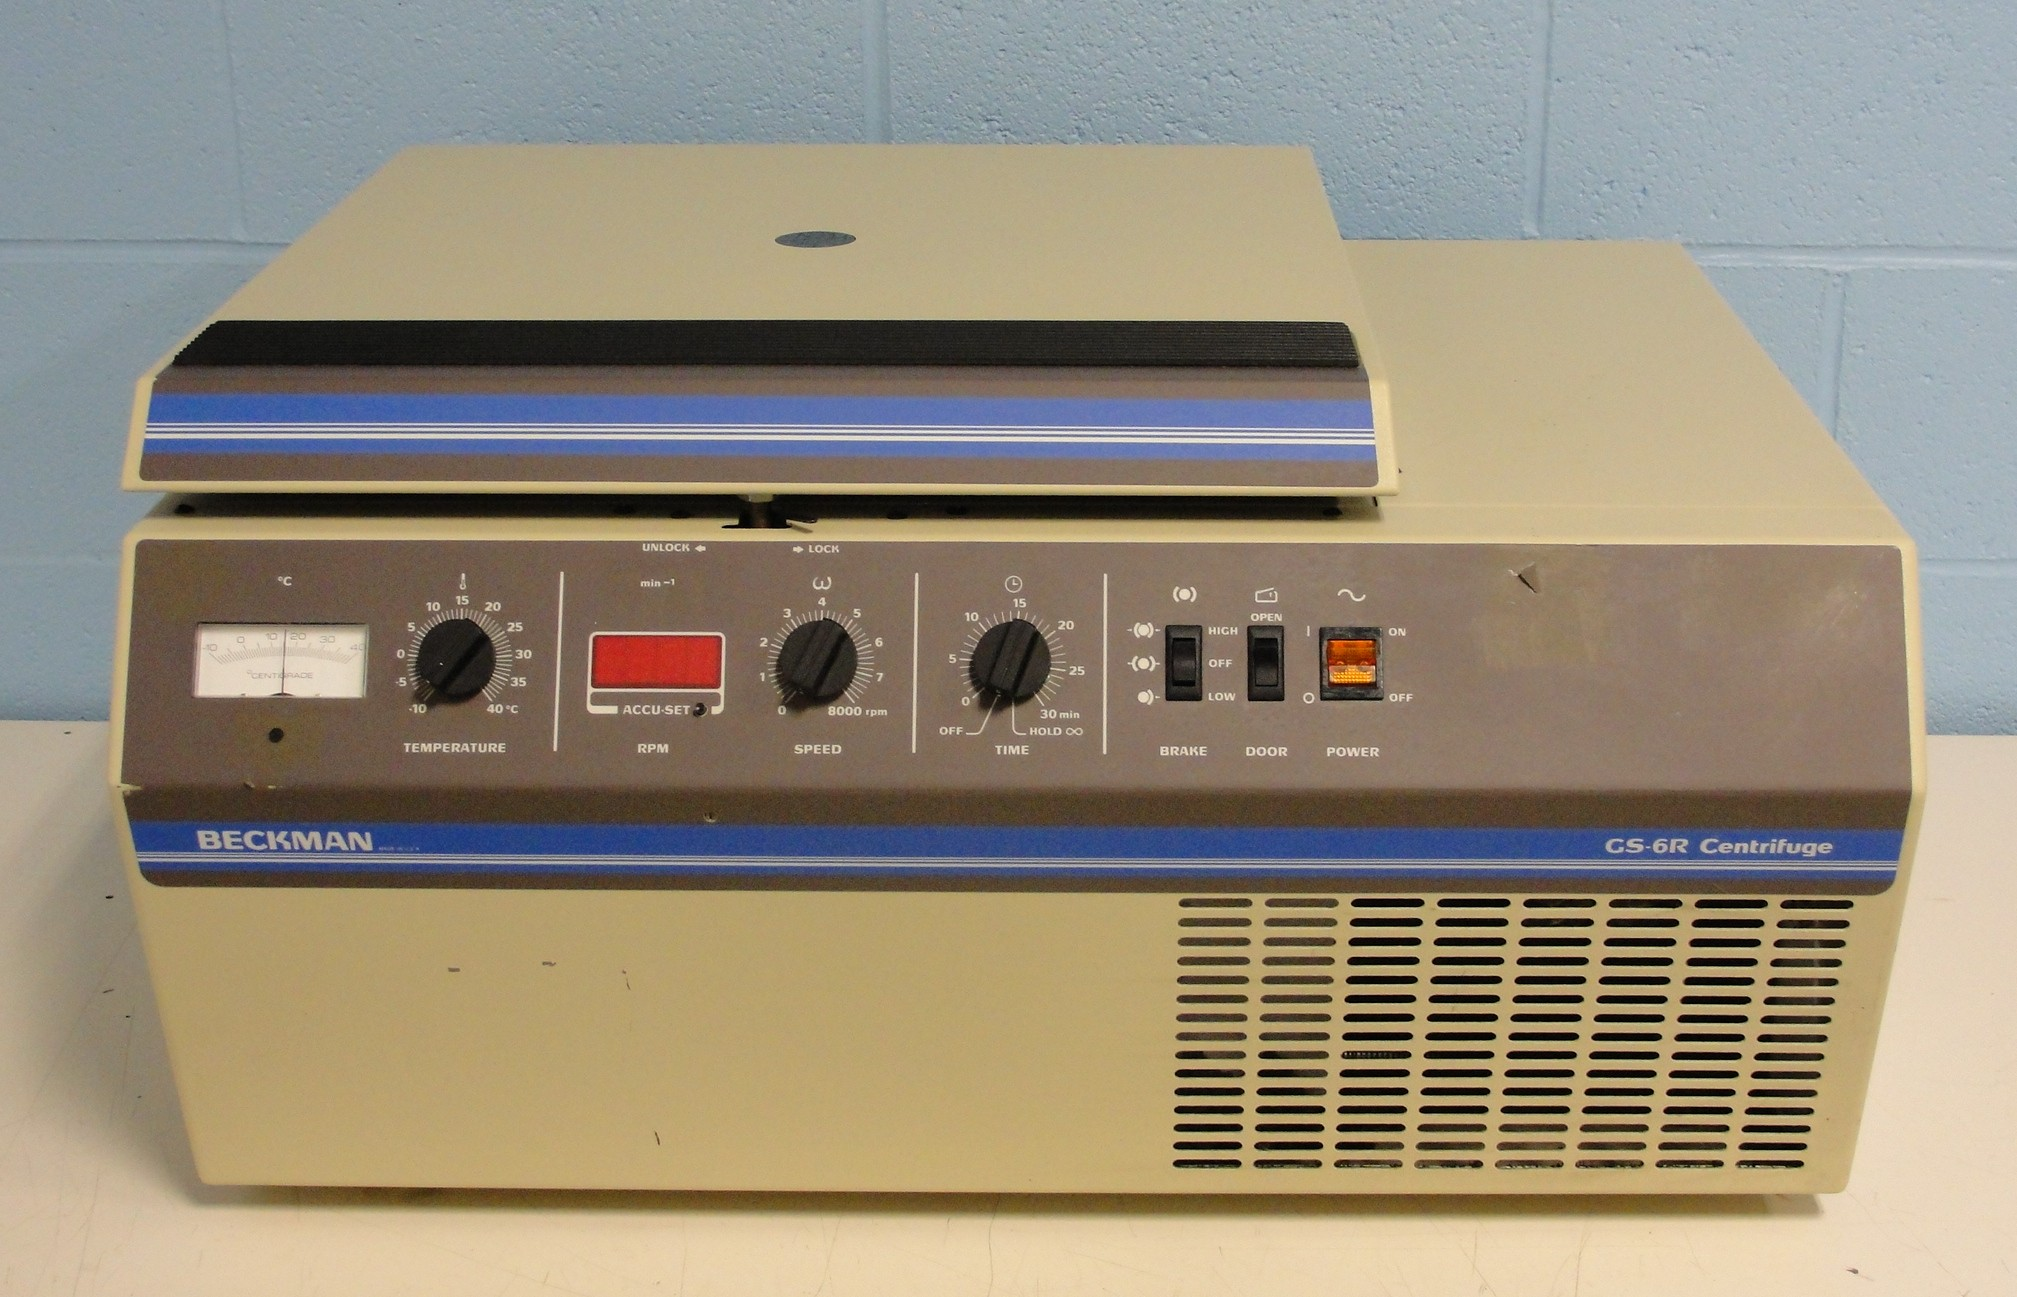 Beckman Coulter Allegra GS-6R Refrigerated Benchtop Centrifuge Image